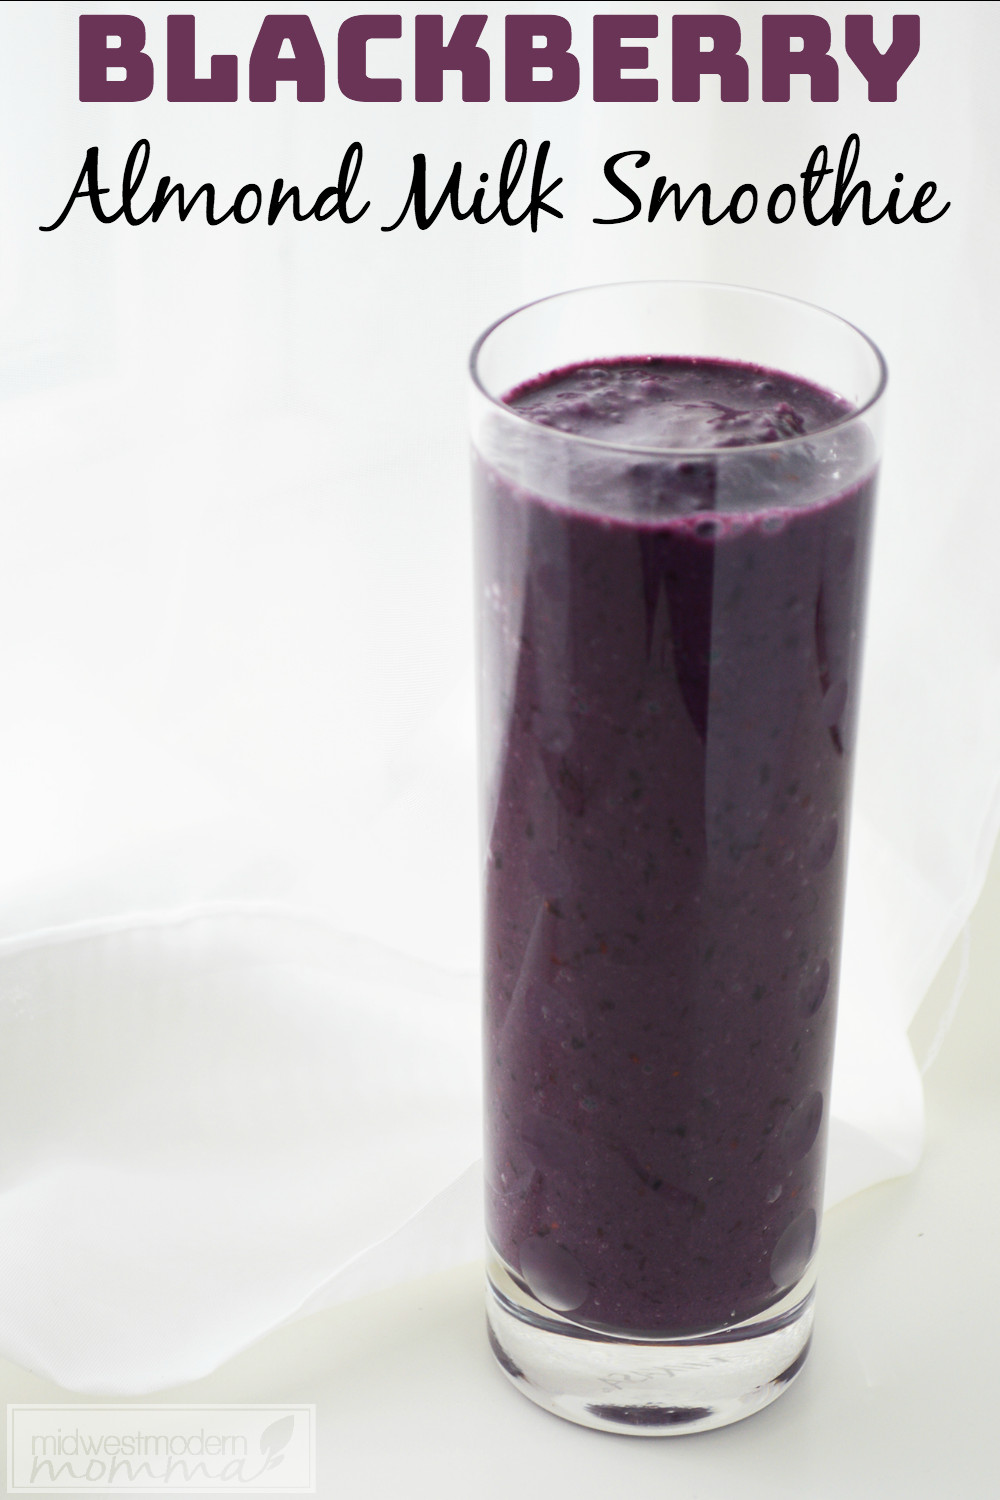 Healthy Smoothies With Almond Milk  Blackberry Almond Milk Smoothie